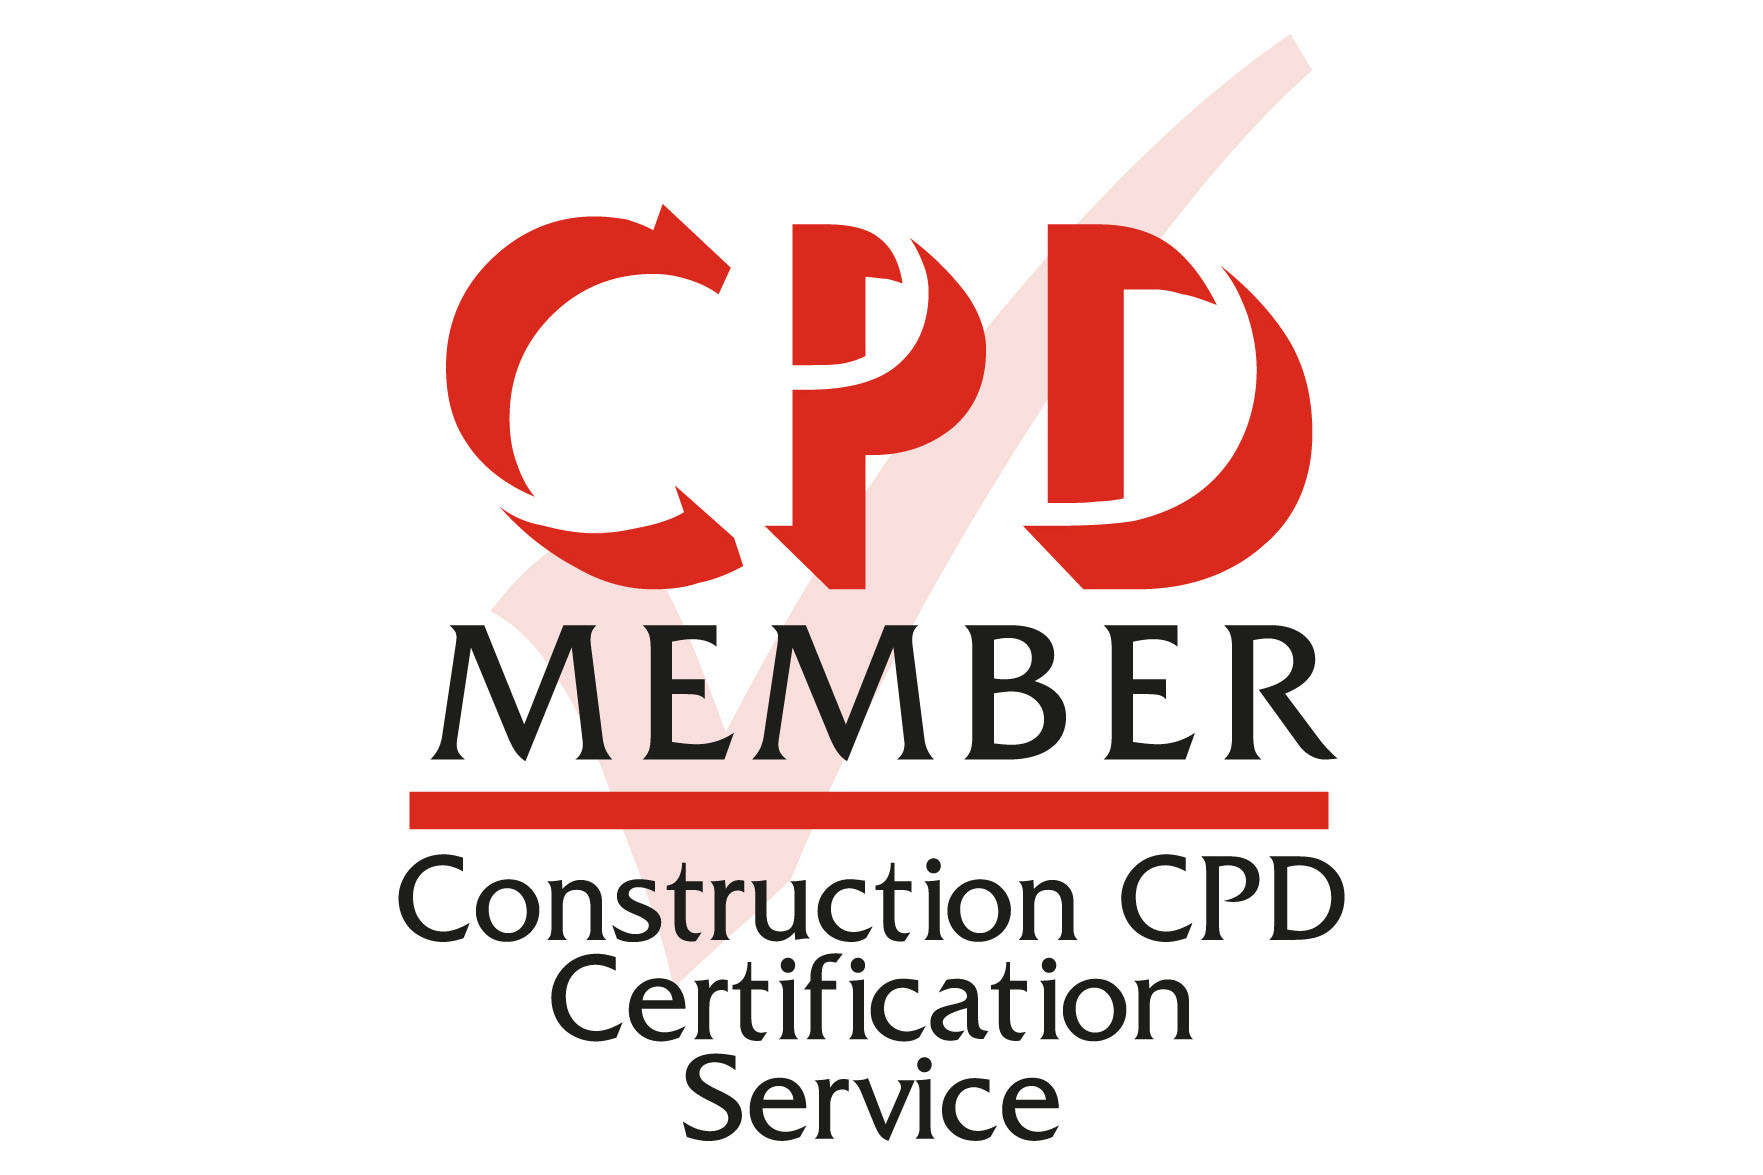 cpd_member_construction_cert_485_rgb-01